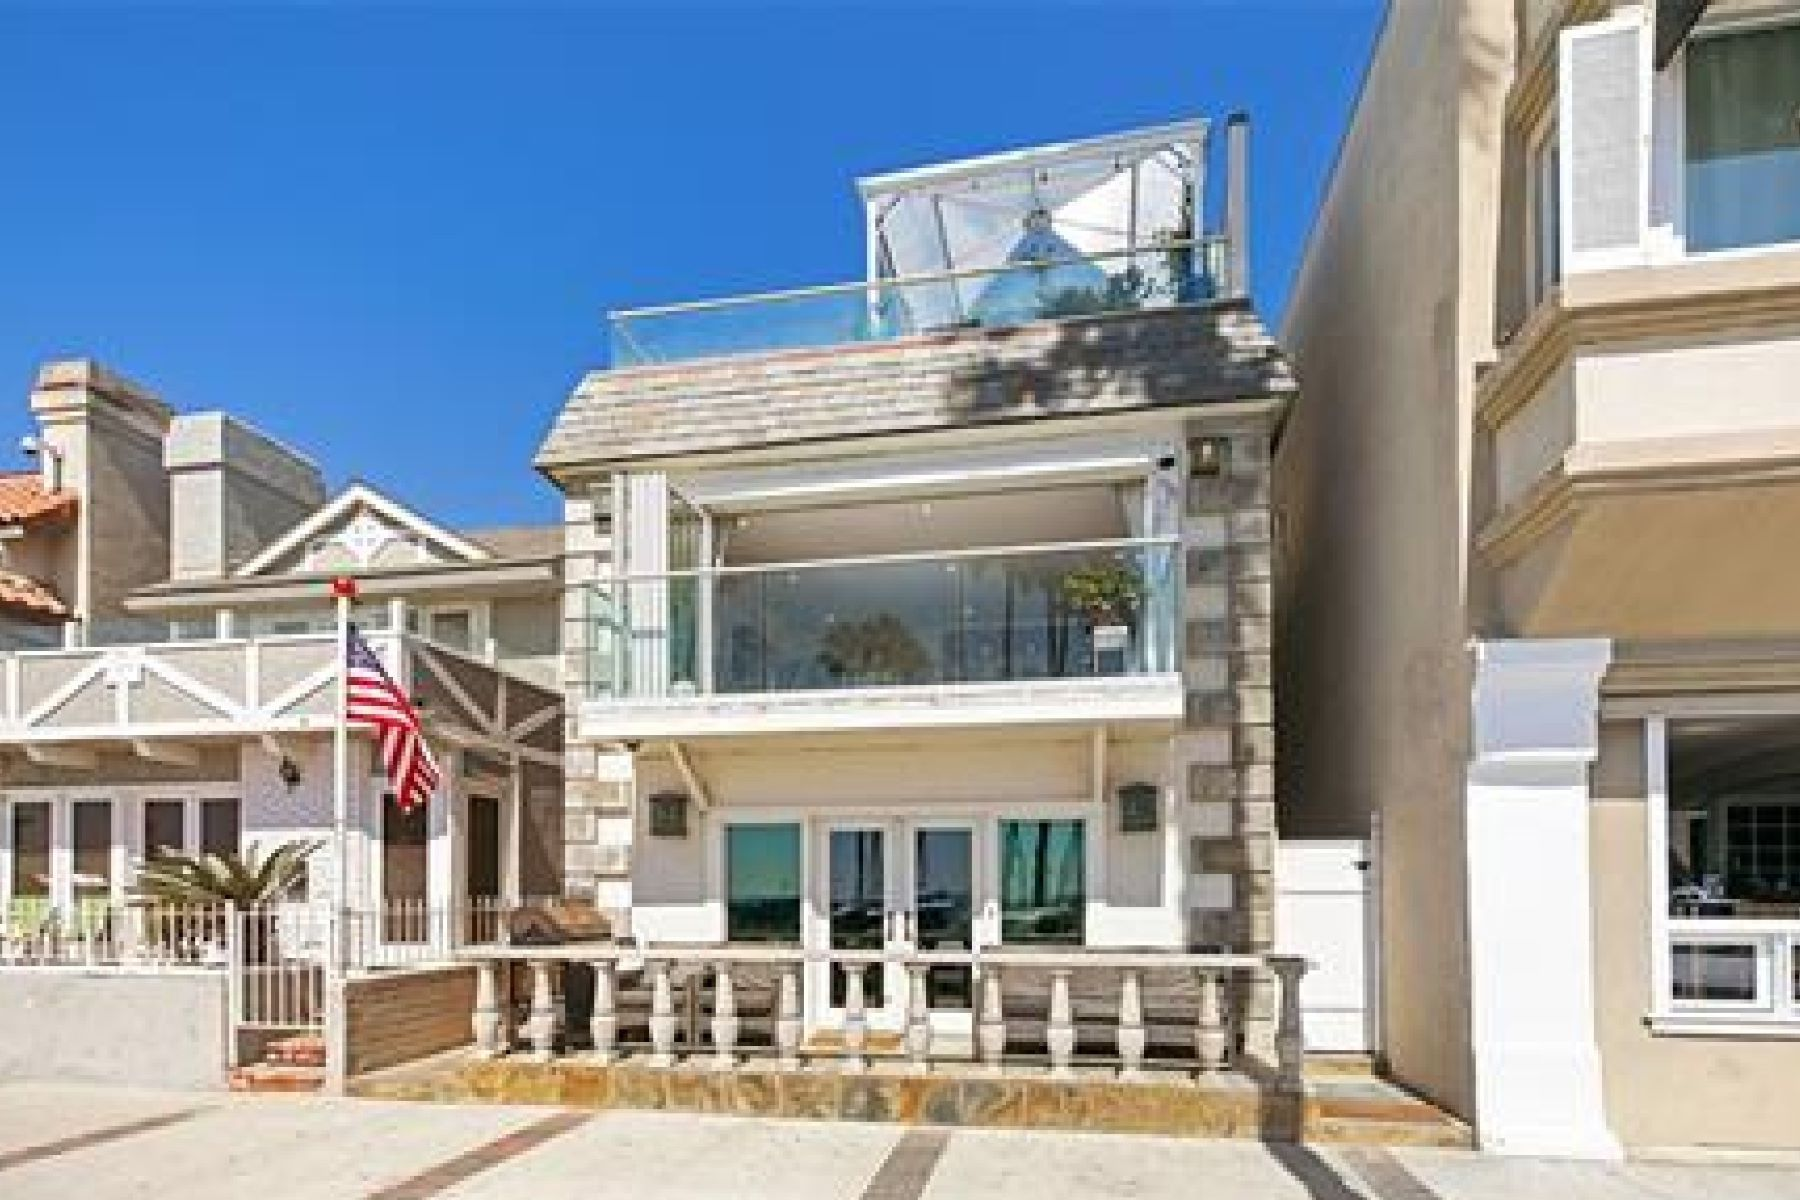 Single Family Homes for Sale at 2308 W Oceanfront Newport Beach, California 92663 United States